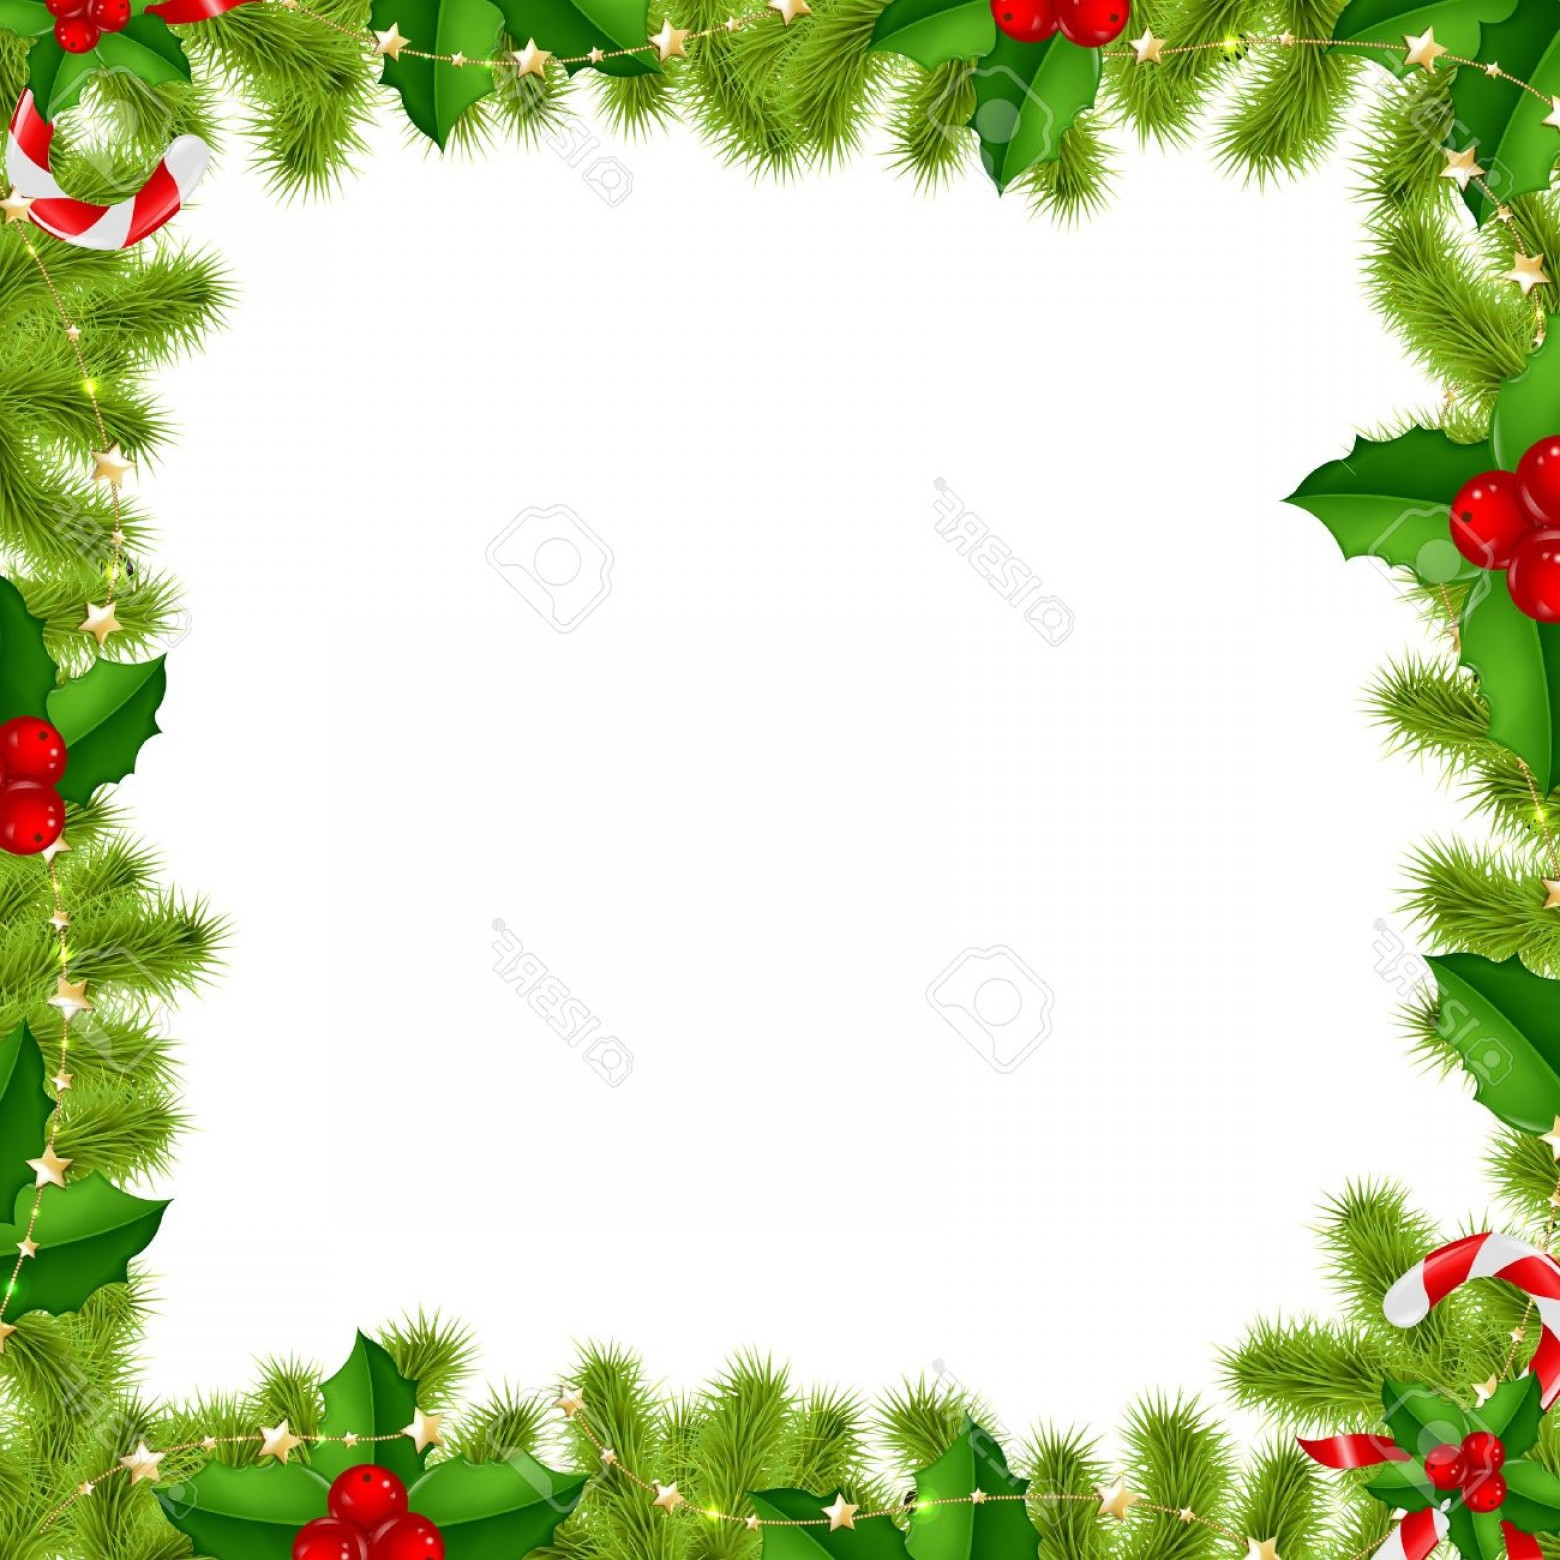 Holly Berry Vector Border: Photoborder Fir Tree Branches With Gold Stars And Holly Berry Isolated On White Background With Gradient